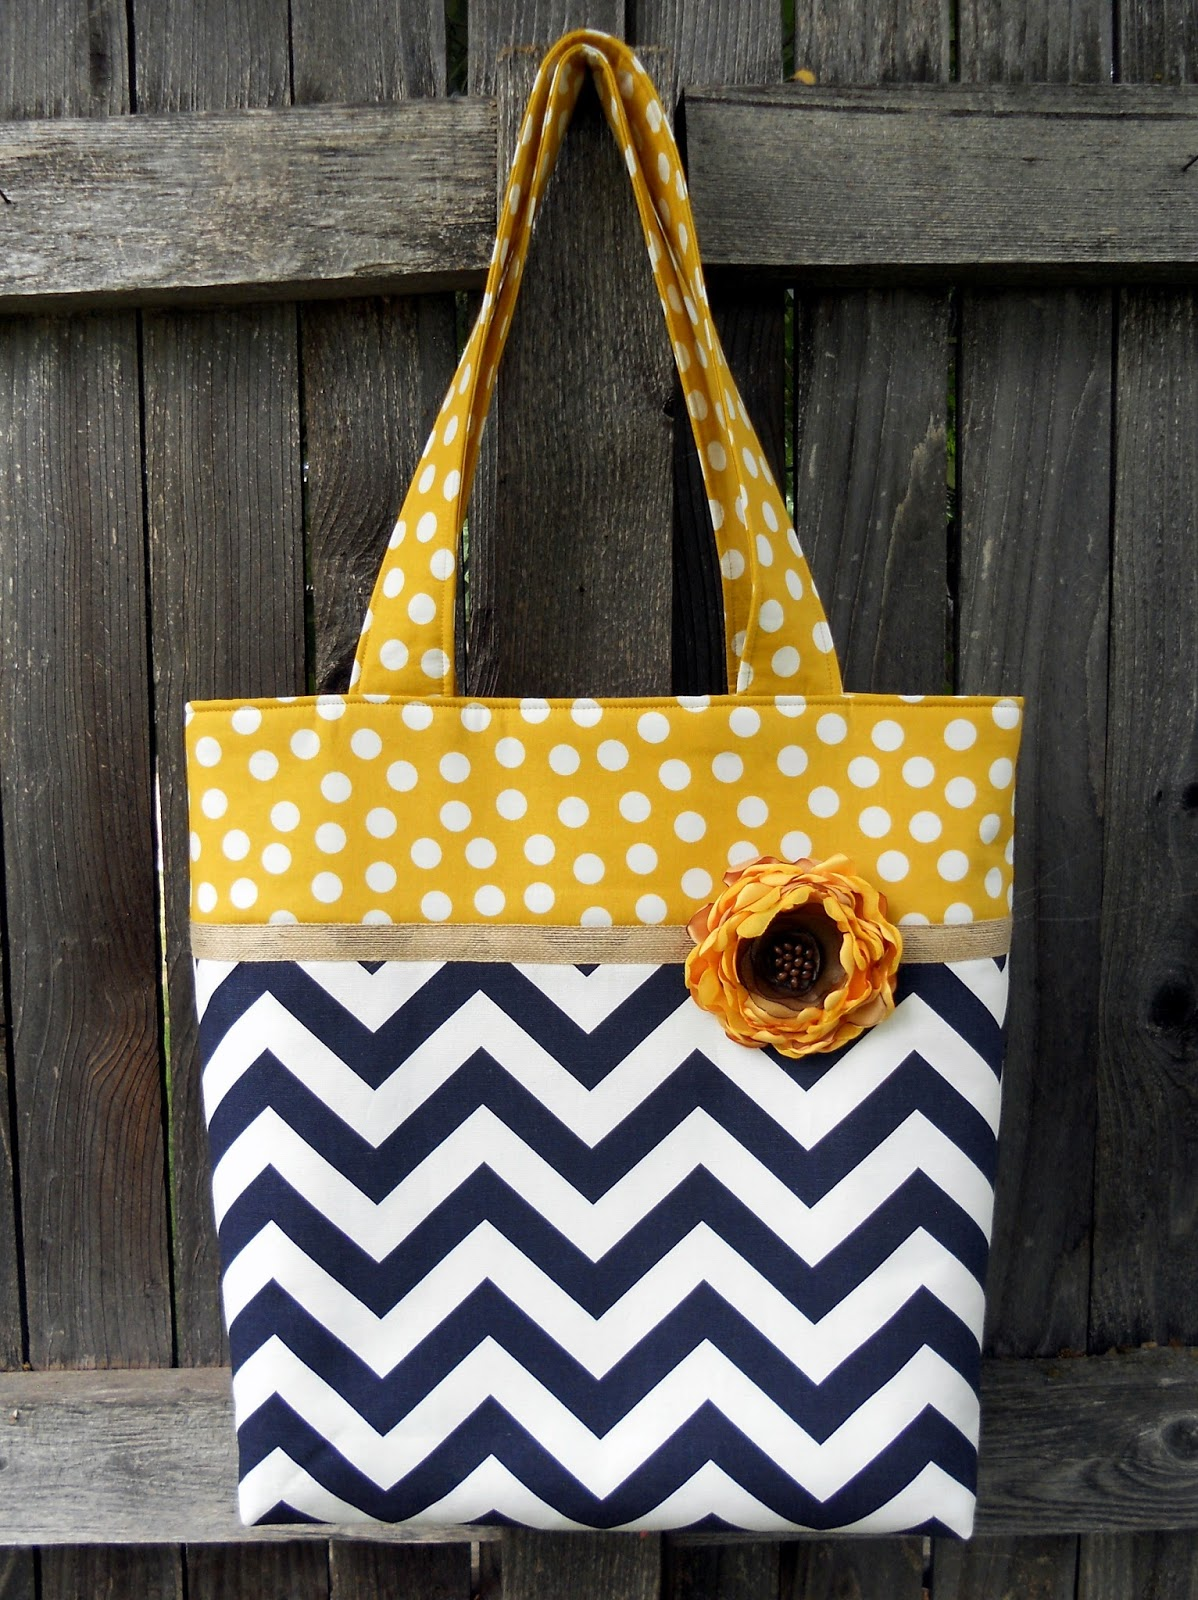 Just Another Hang Up: Two-Toned Fabric Tote and some Tips...